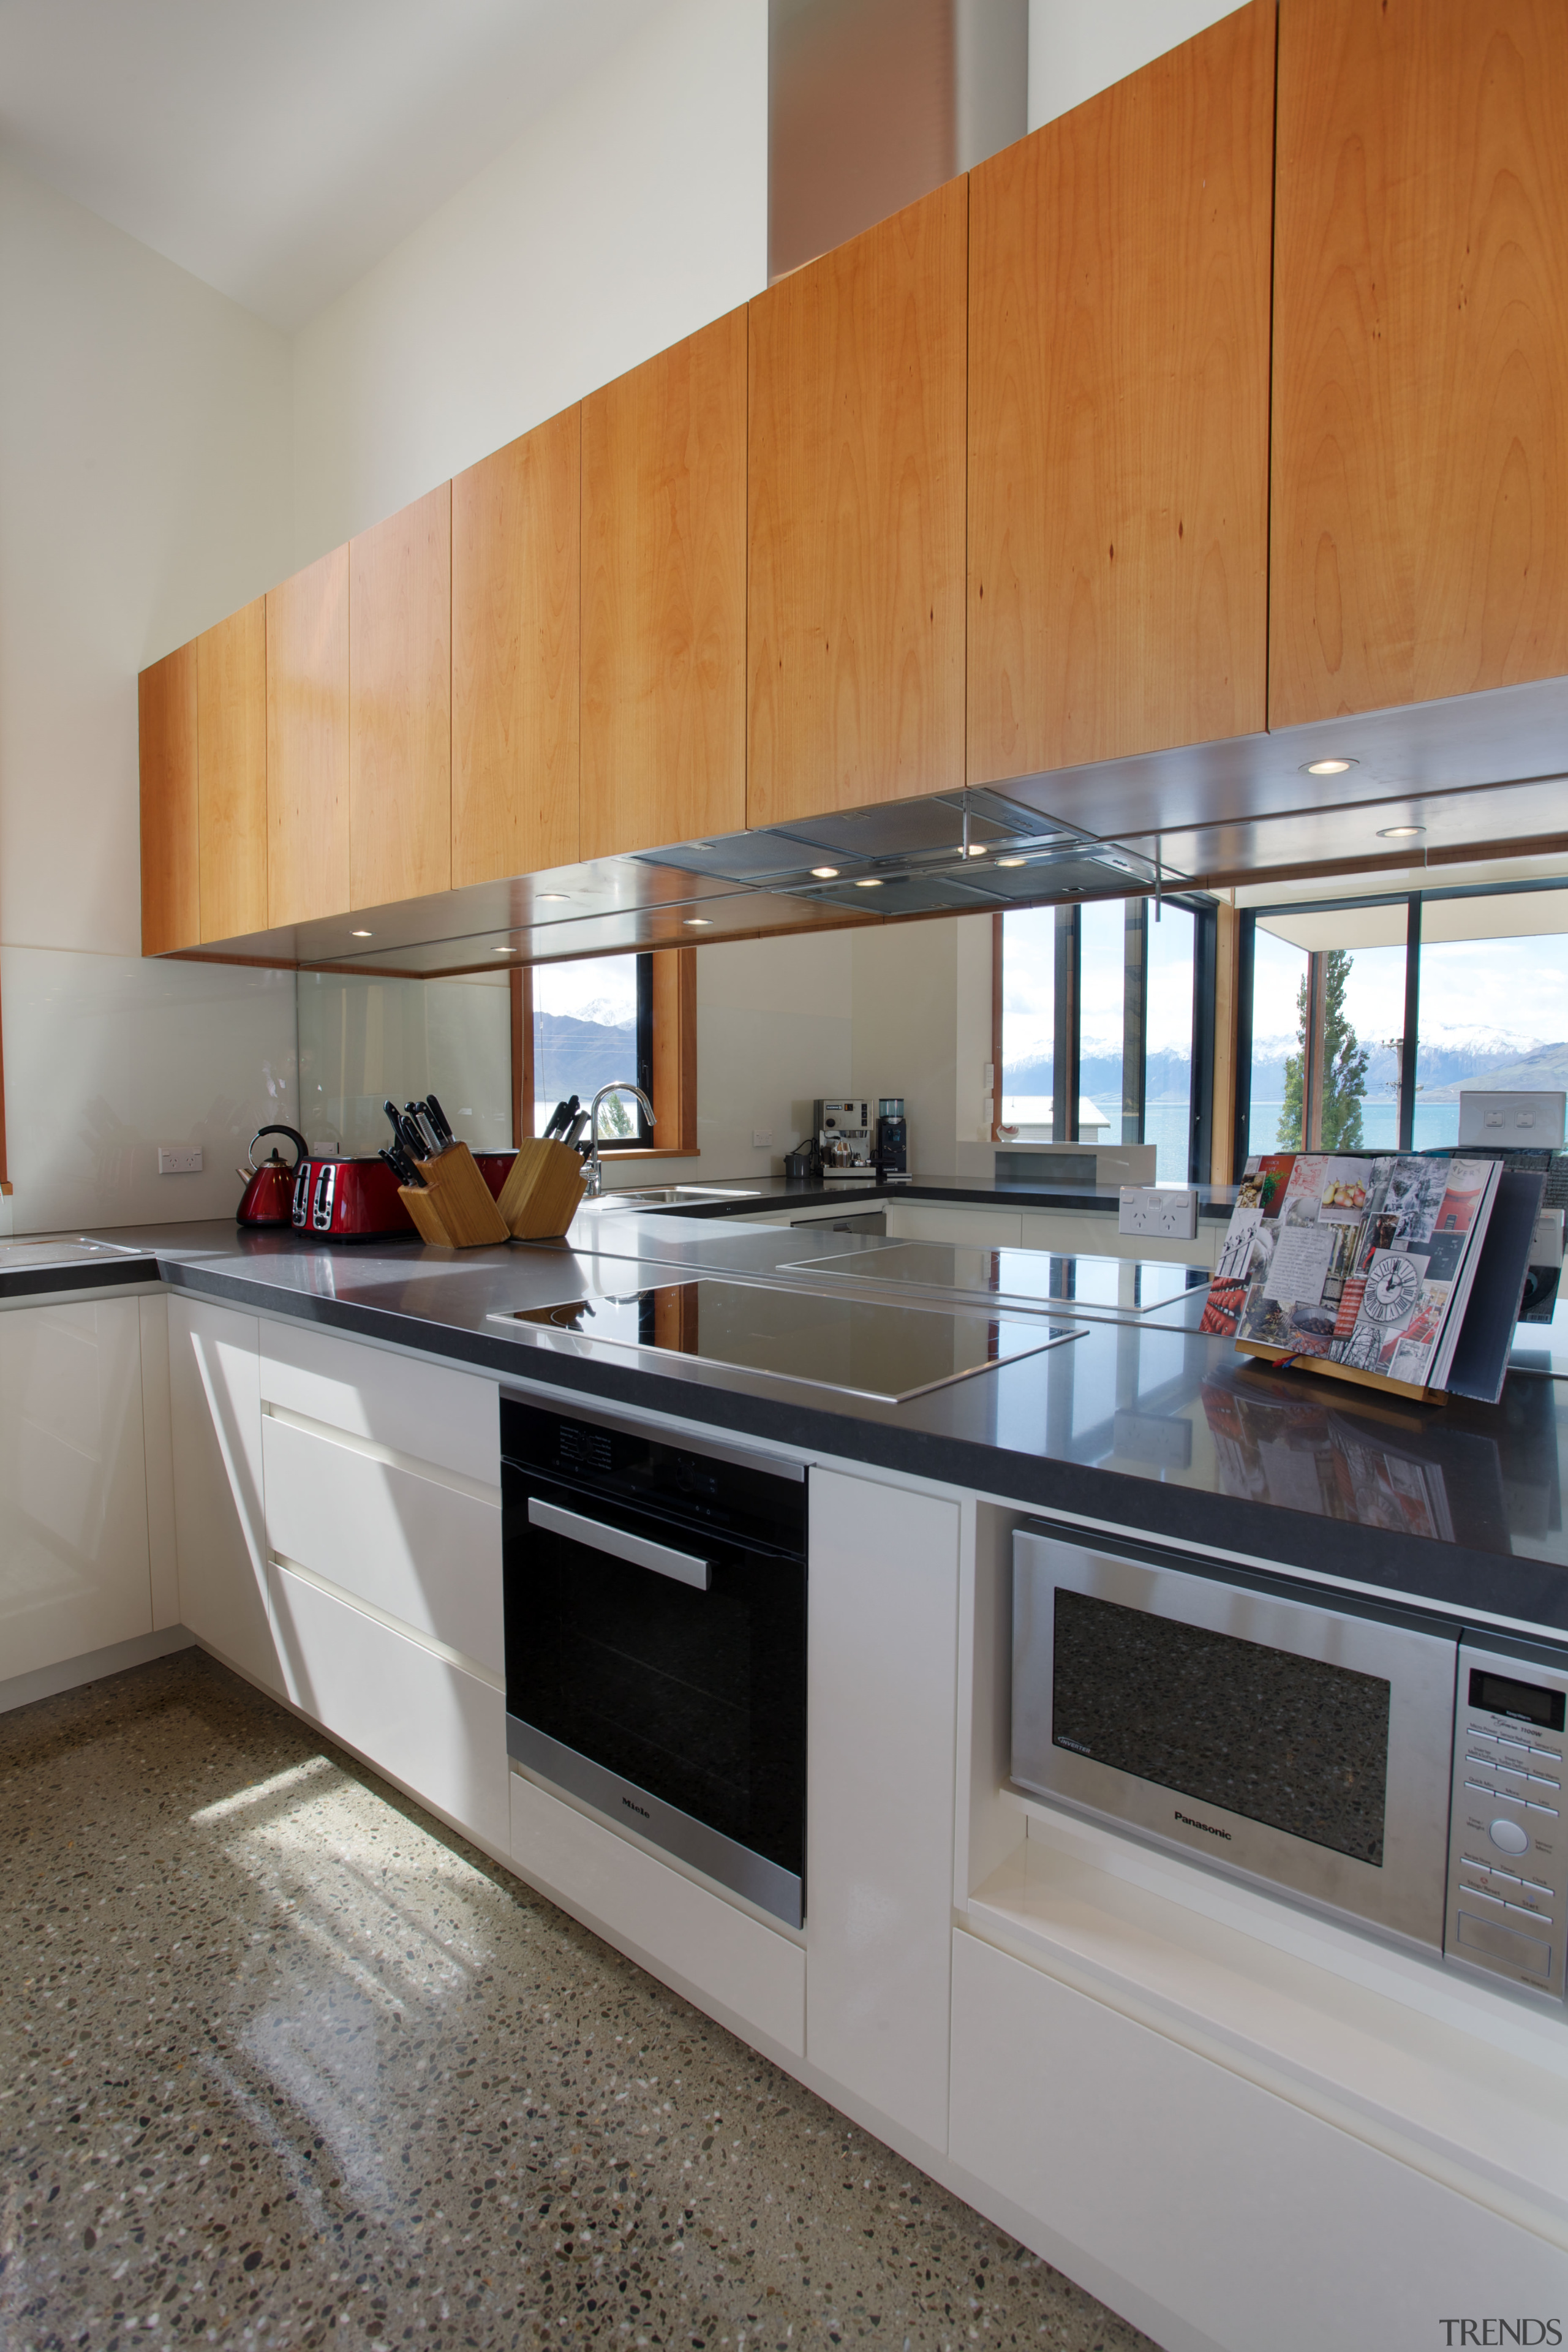 The views in this new holiday home are cabinetry, countertop, cuisine classique, interior design, kitchen, real estate, gray